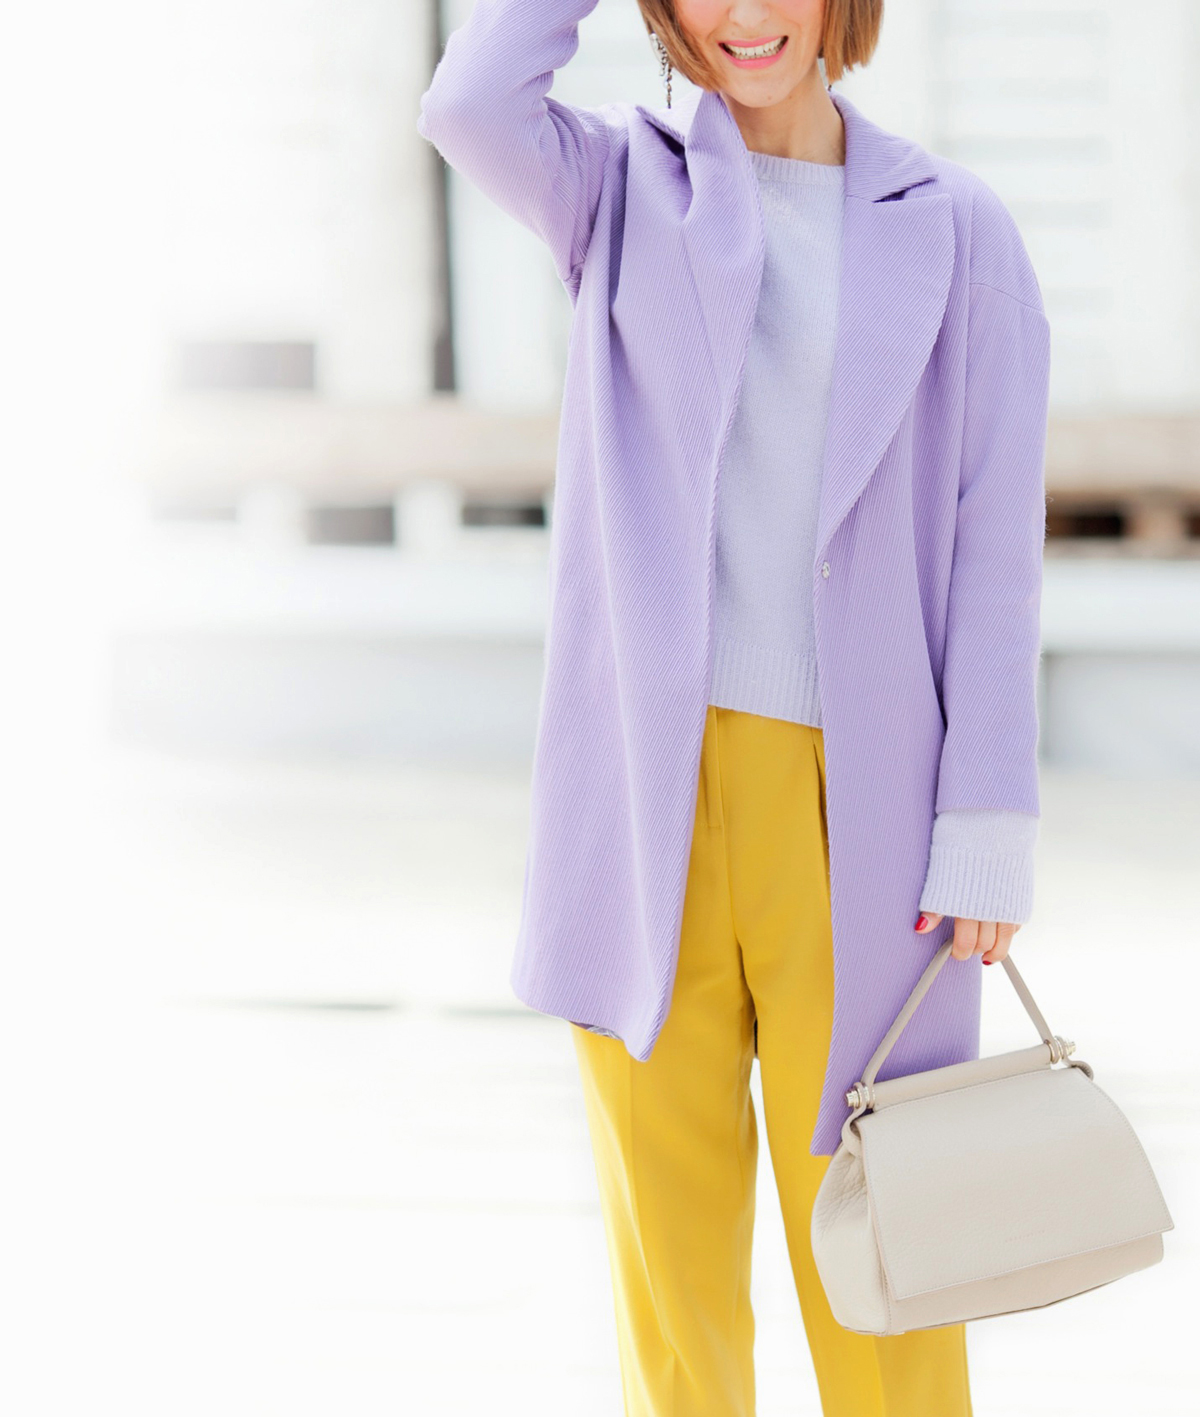 lilac coat outfit on GalantGirl.com